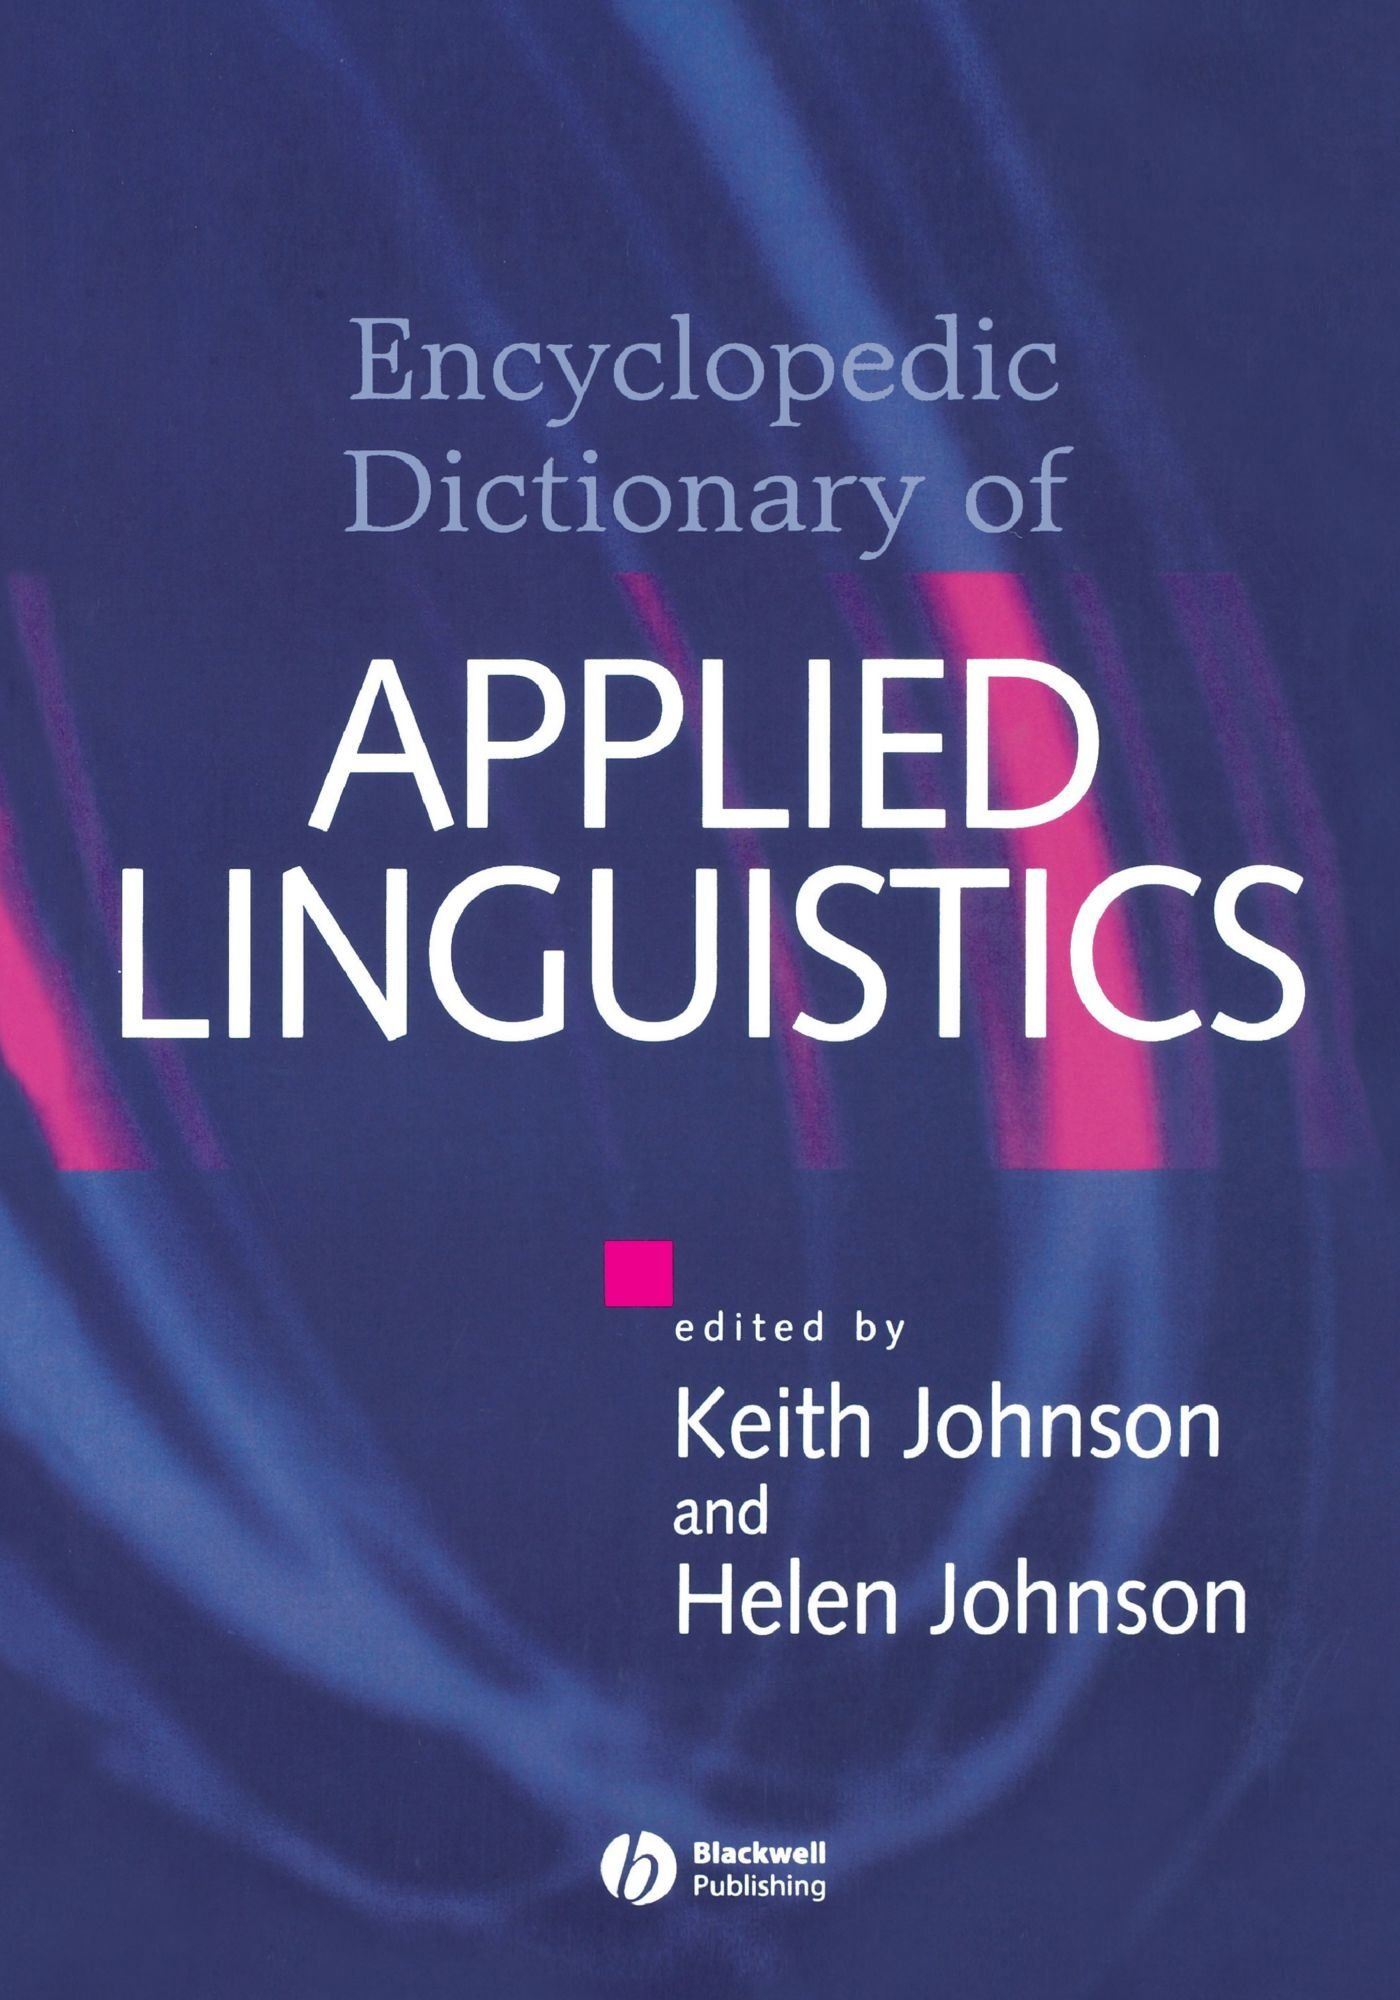 The Encyclopedic Dictionary of Applied Linguistics: A Handbook for Language Teaching